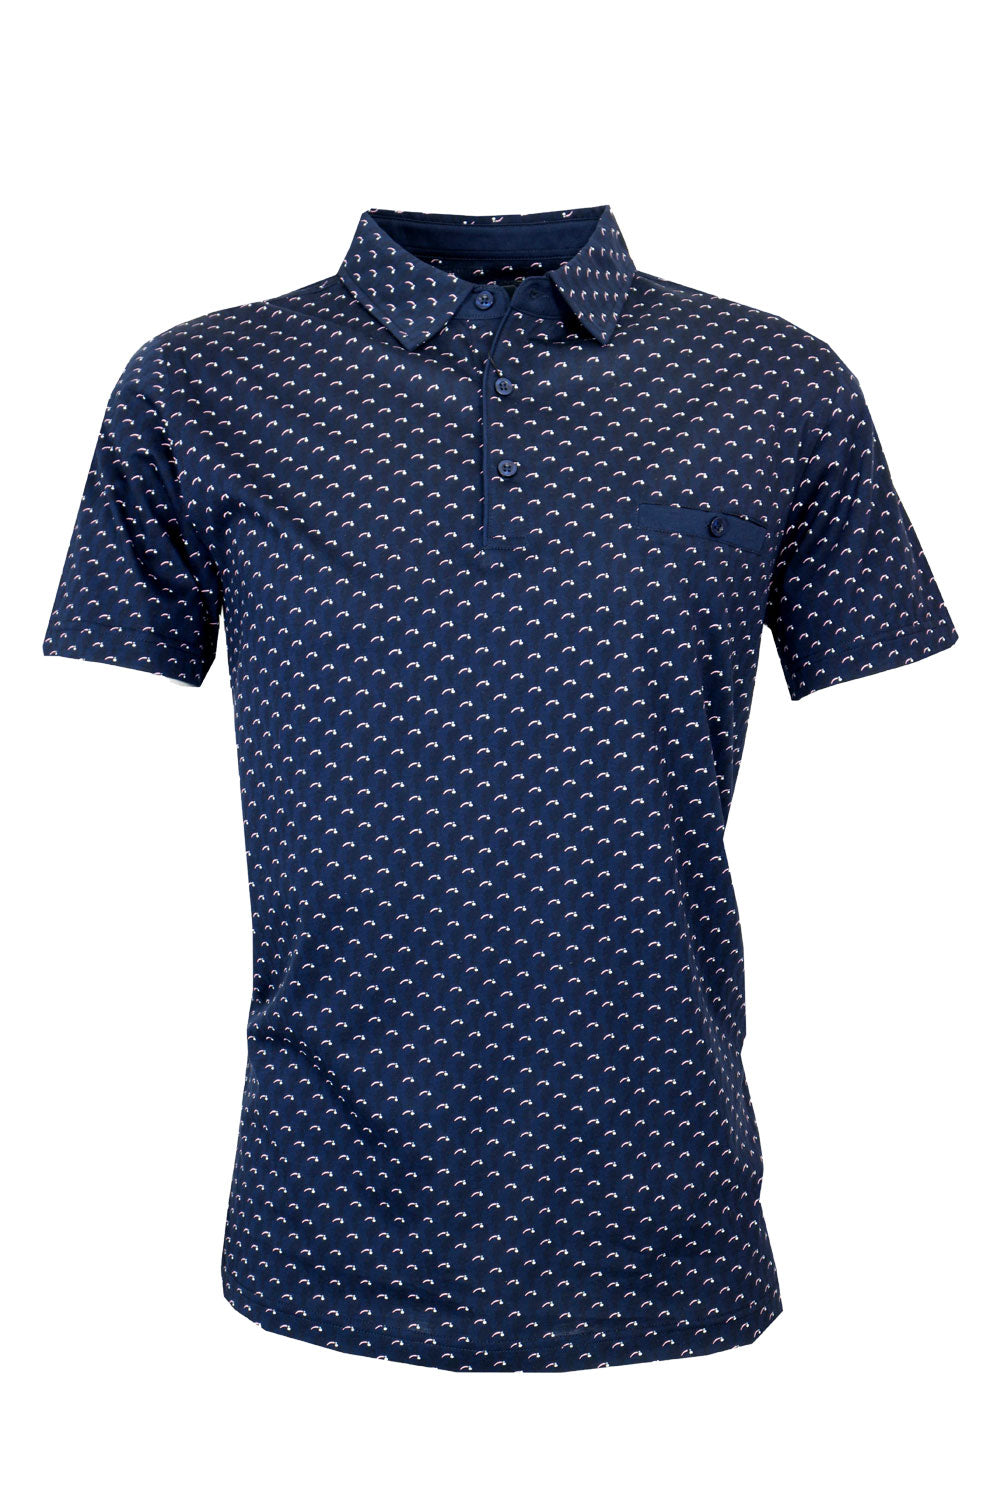 Cutler Harris Polo | Shop Mens Clothing at Wallace and Gibbs